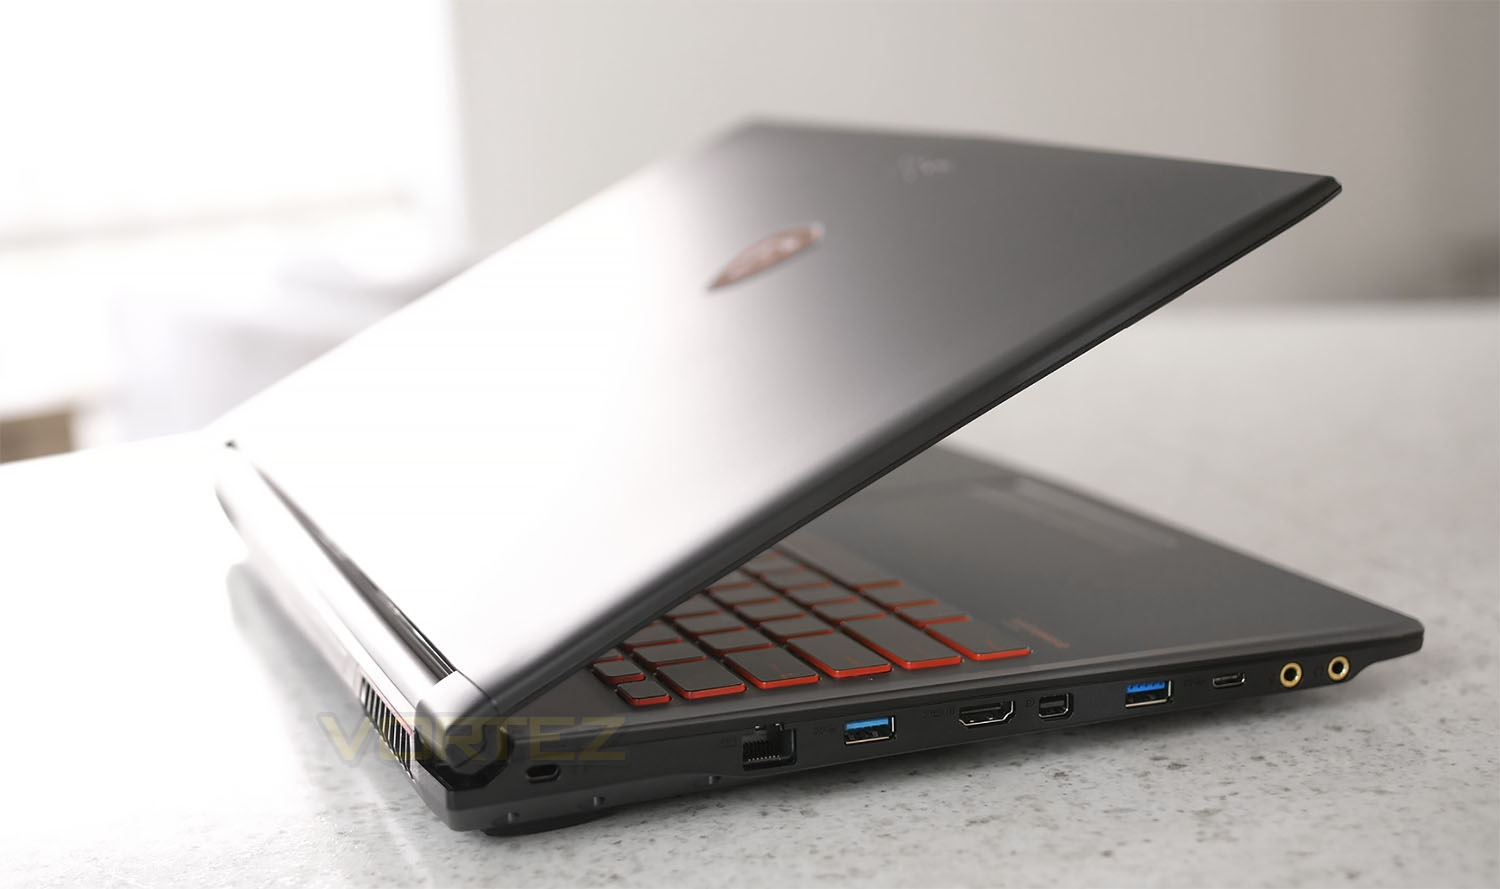 Best laptops for hacking 2020